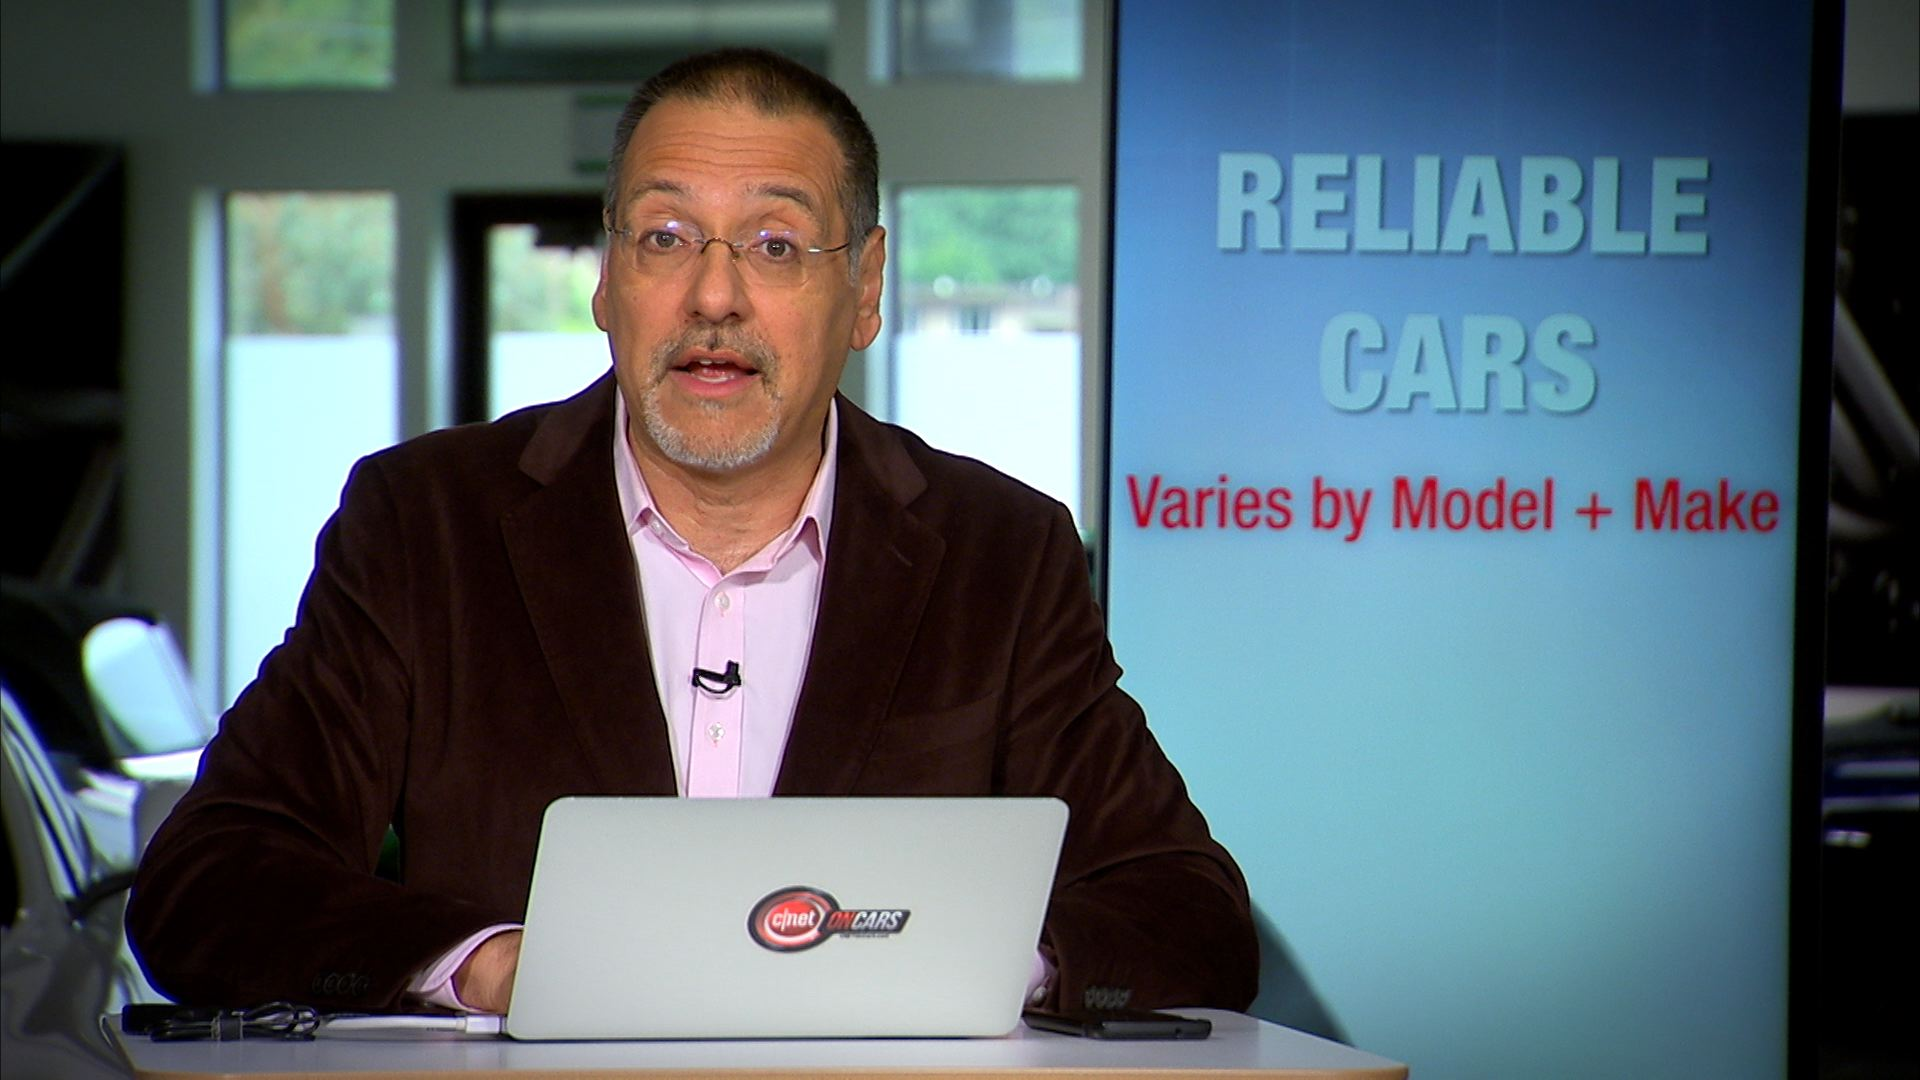 Video: Your emails: What makes a car reliable?